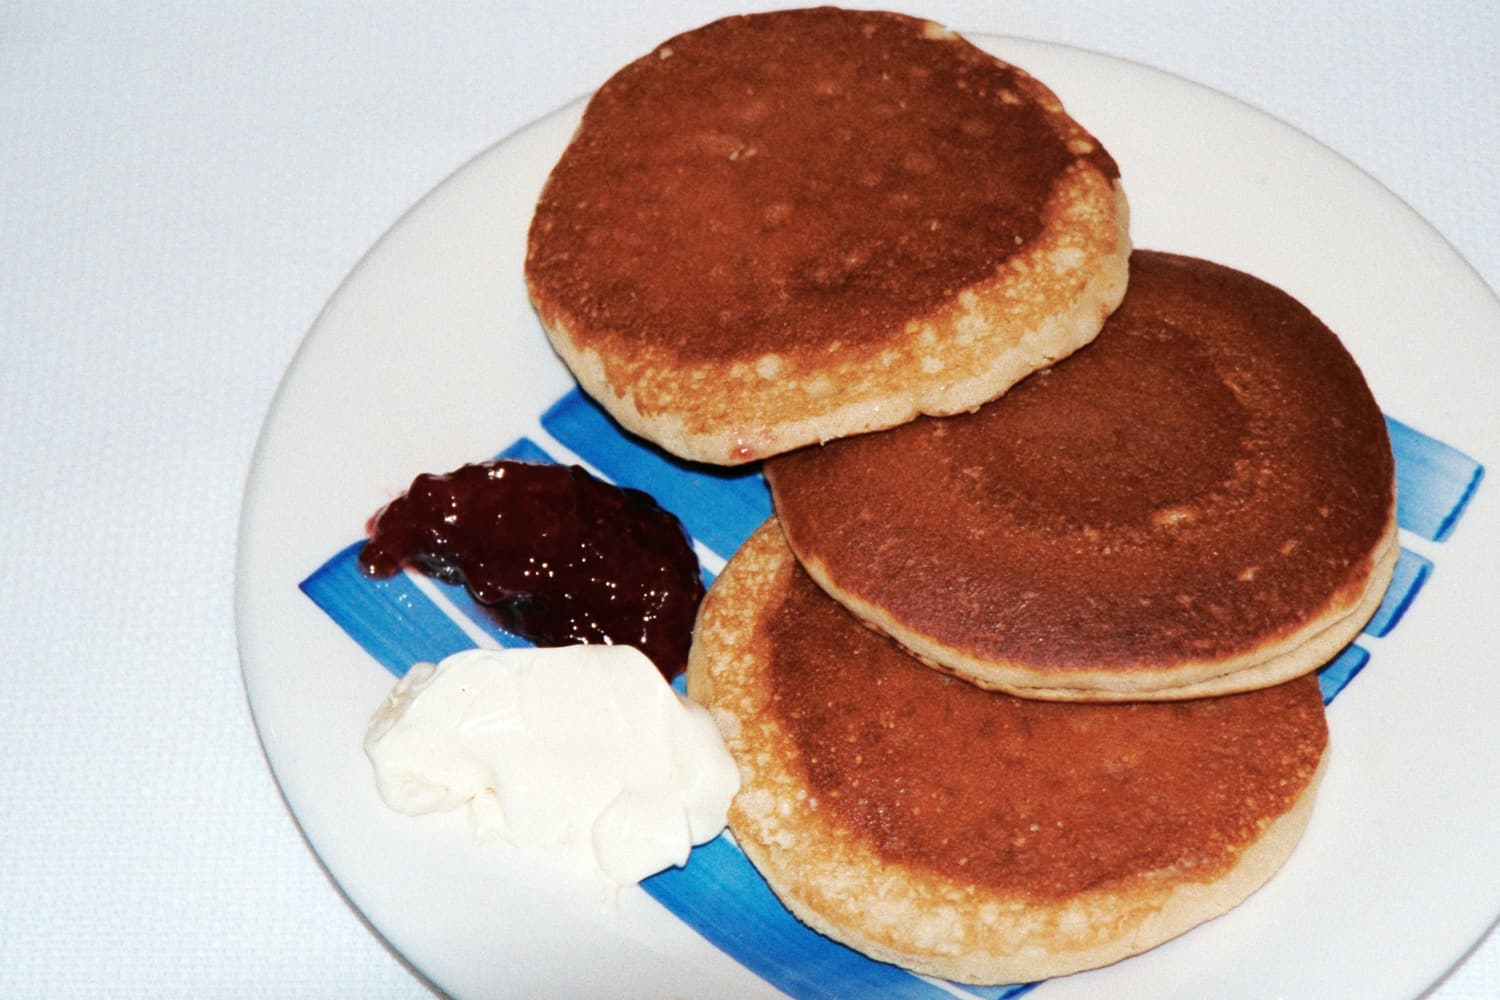 Scottish Pancakes with Jam and Clotted Cream